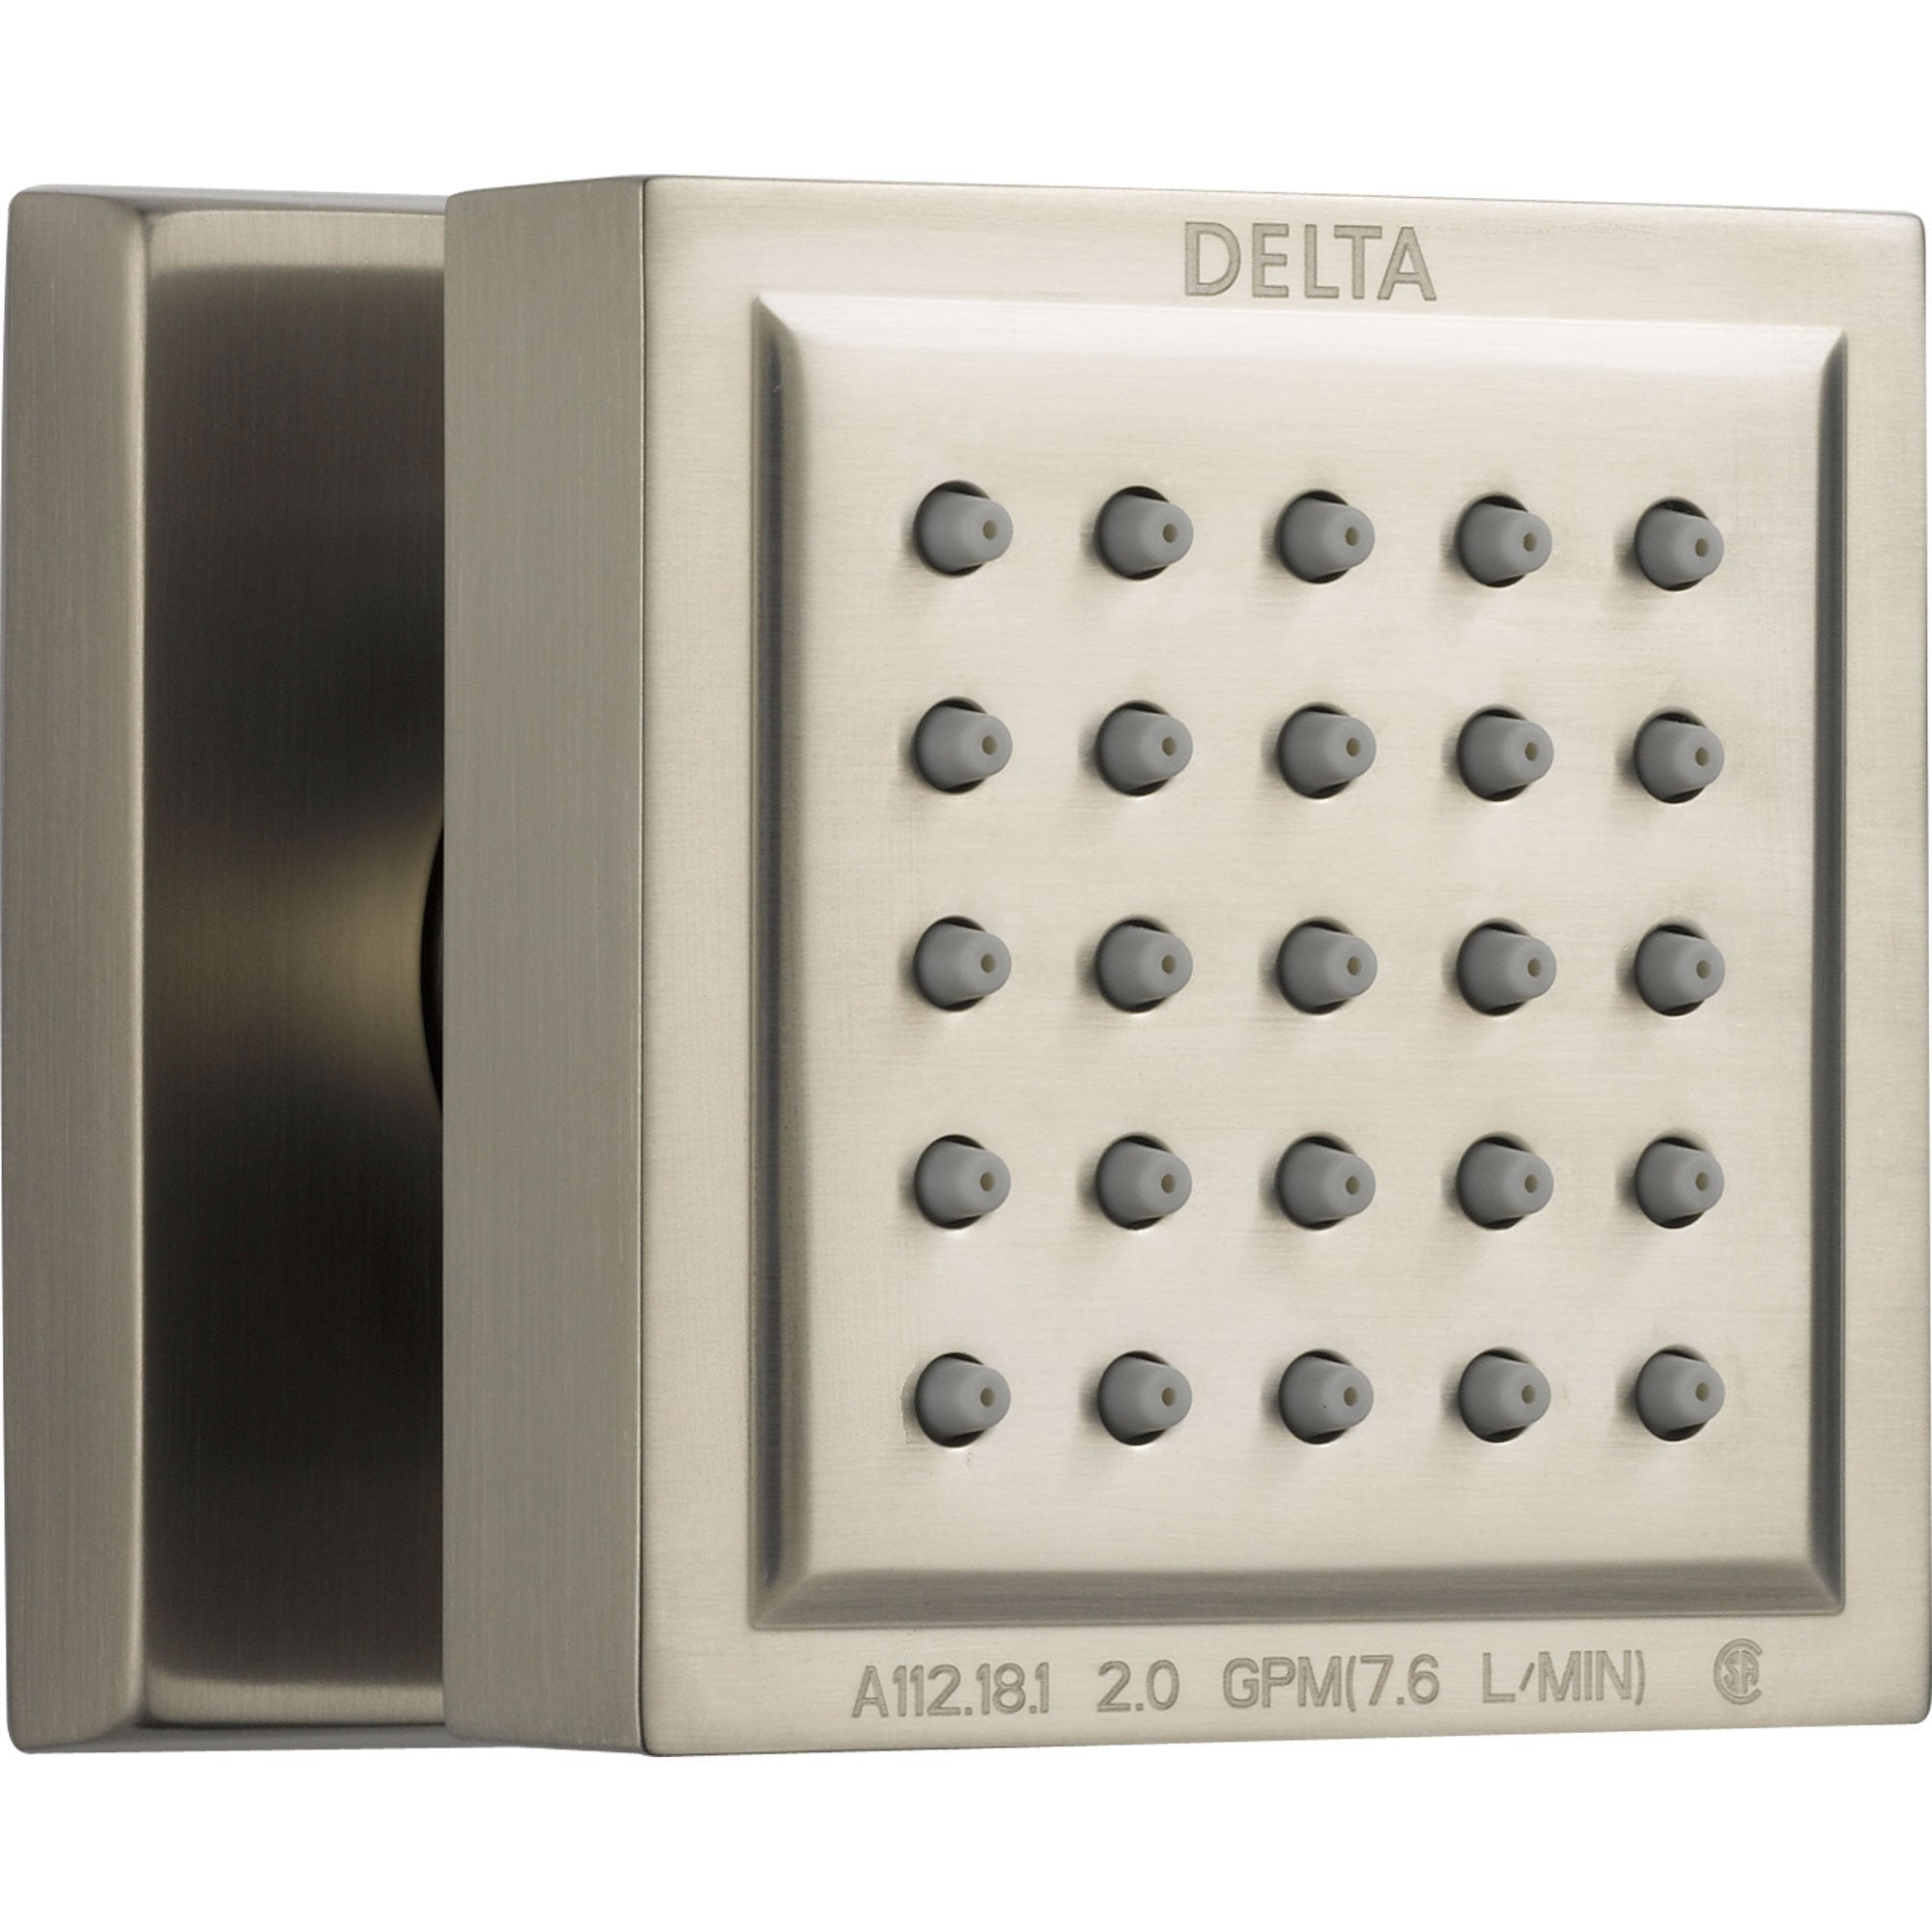 Delta Square Stainless Steel Finish Body Spray 572974